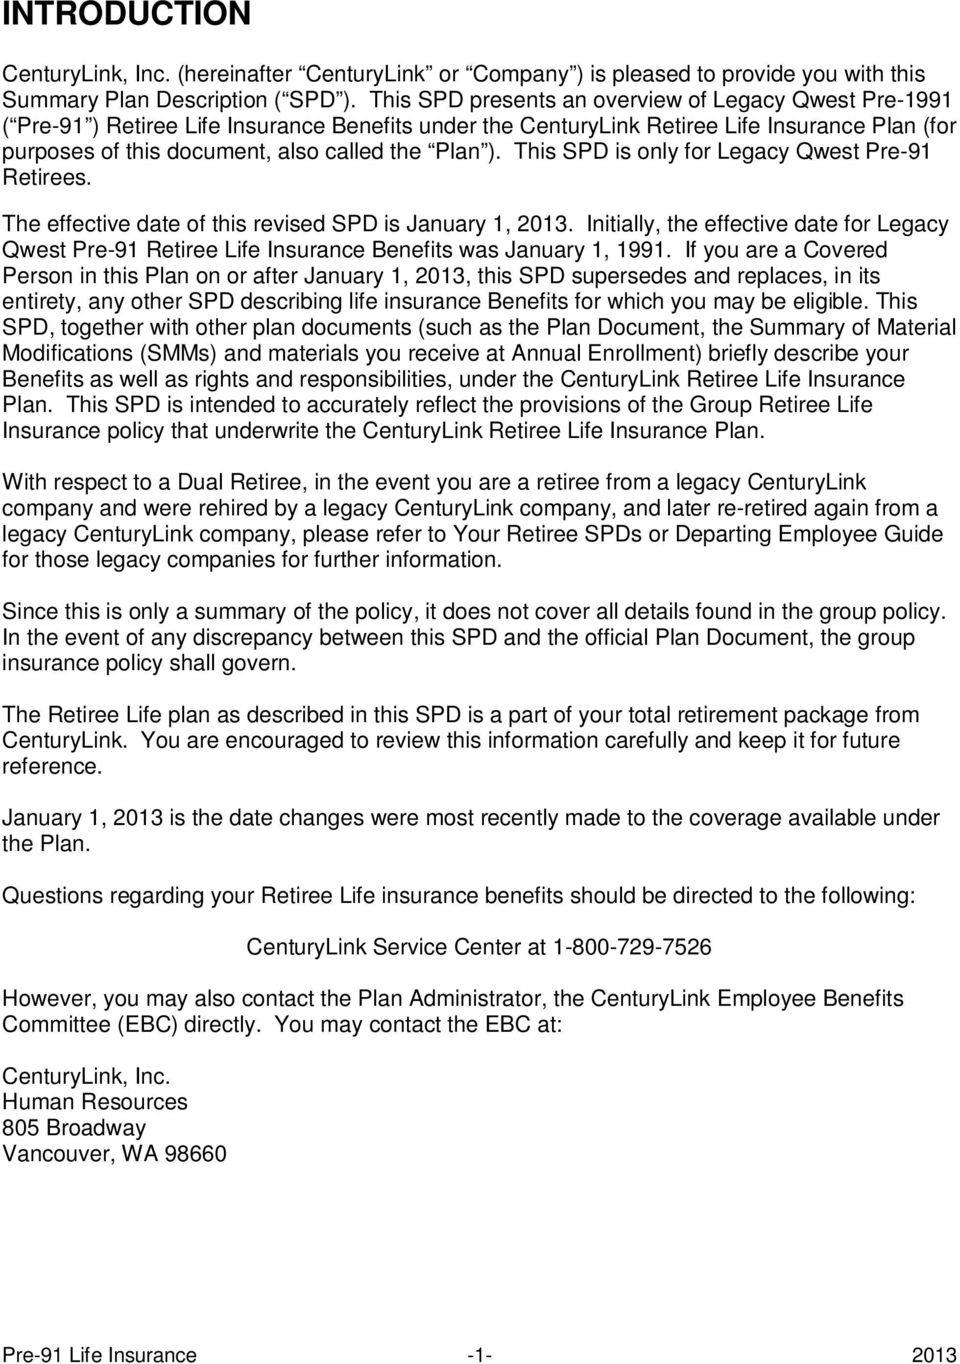 Plan ). This SPD is only for Legacy Qwest Pre-91 Retirees. The effective date of this revised SPD is January 1, 2013.